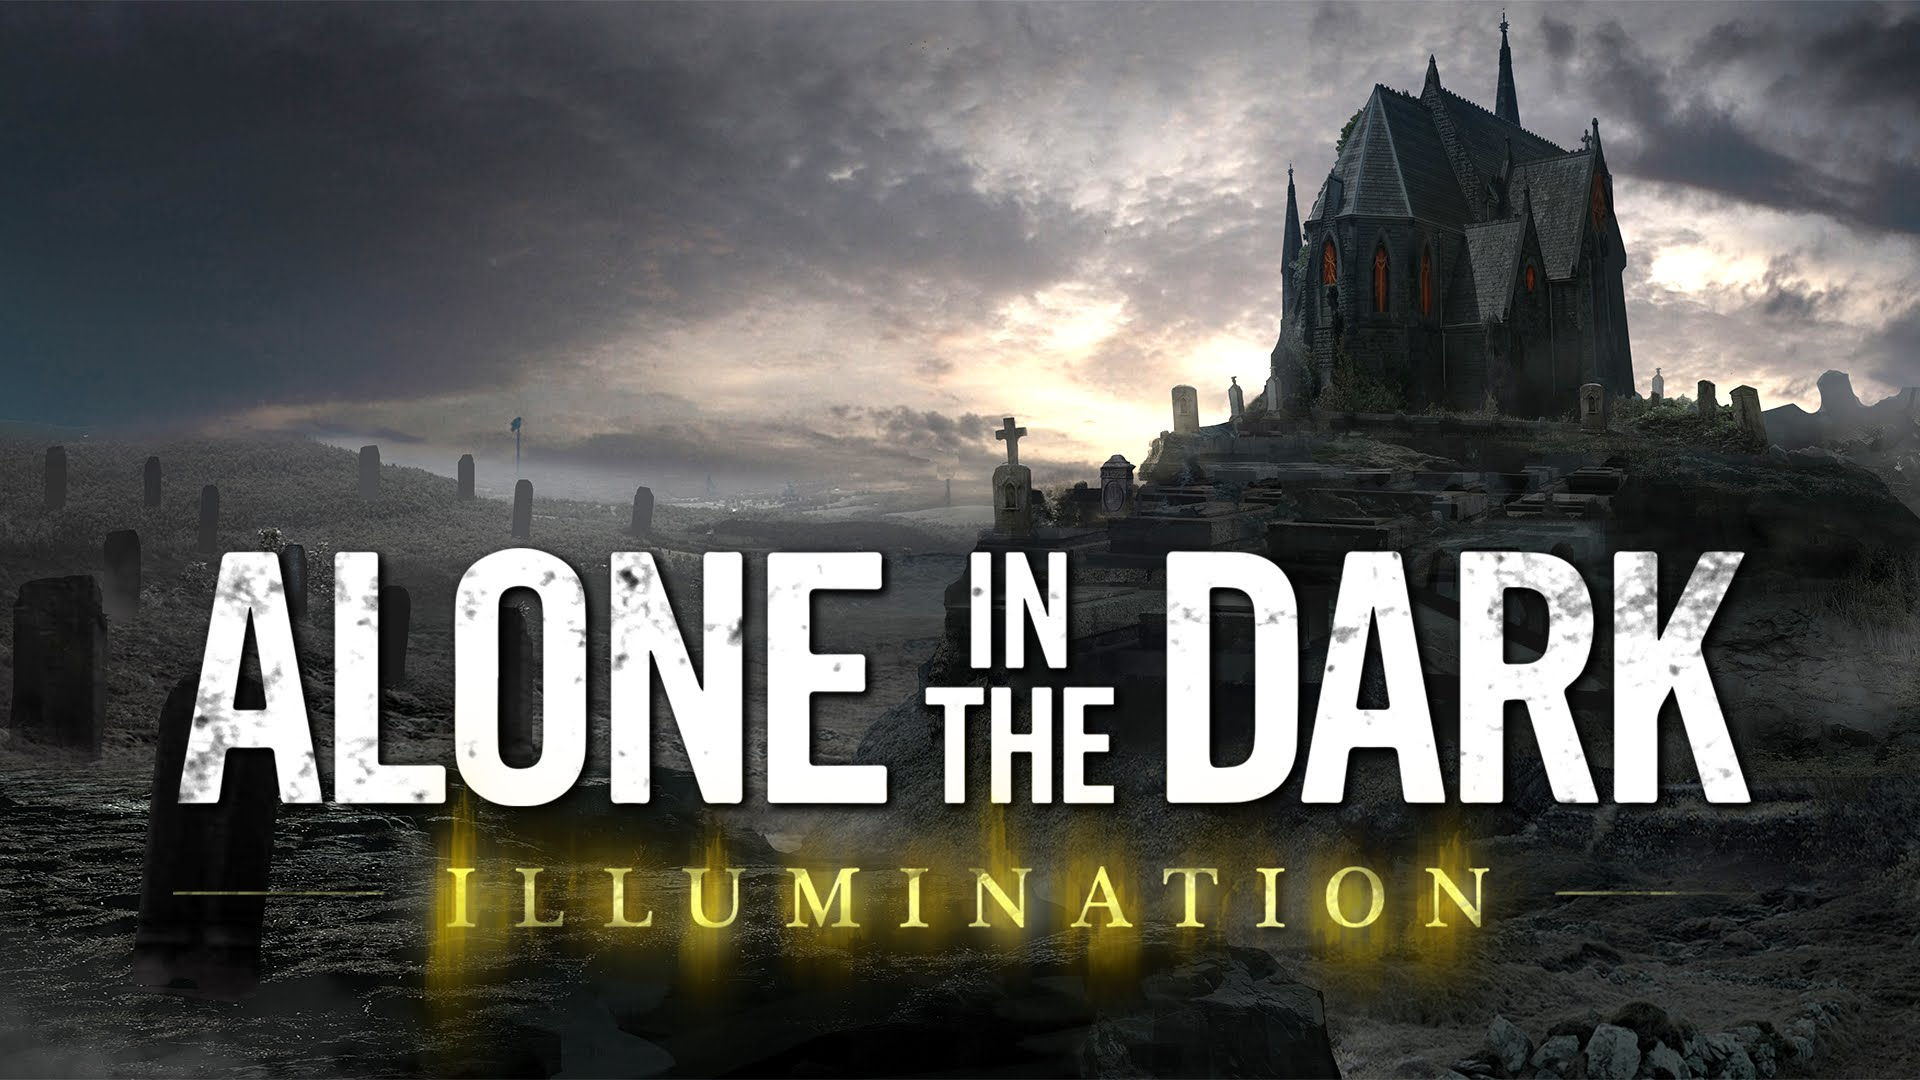 Alone in the Dark: Illumination telecharger gratuit de PC et Torrent